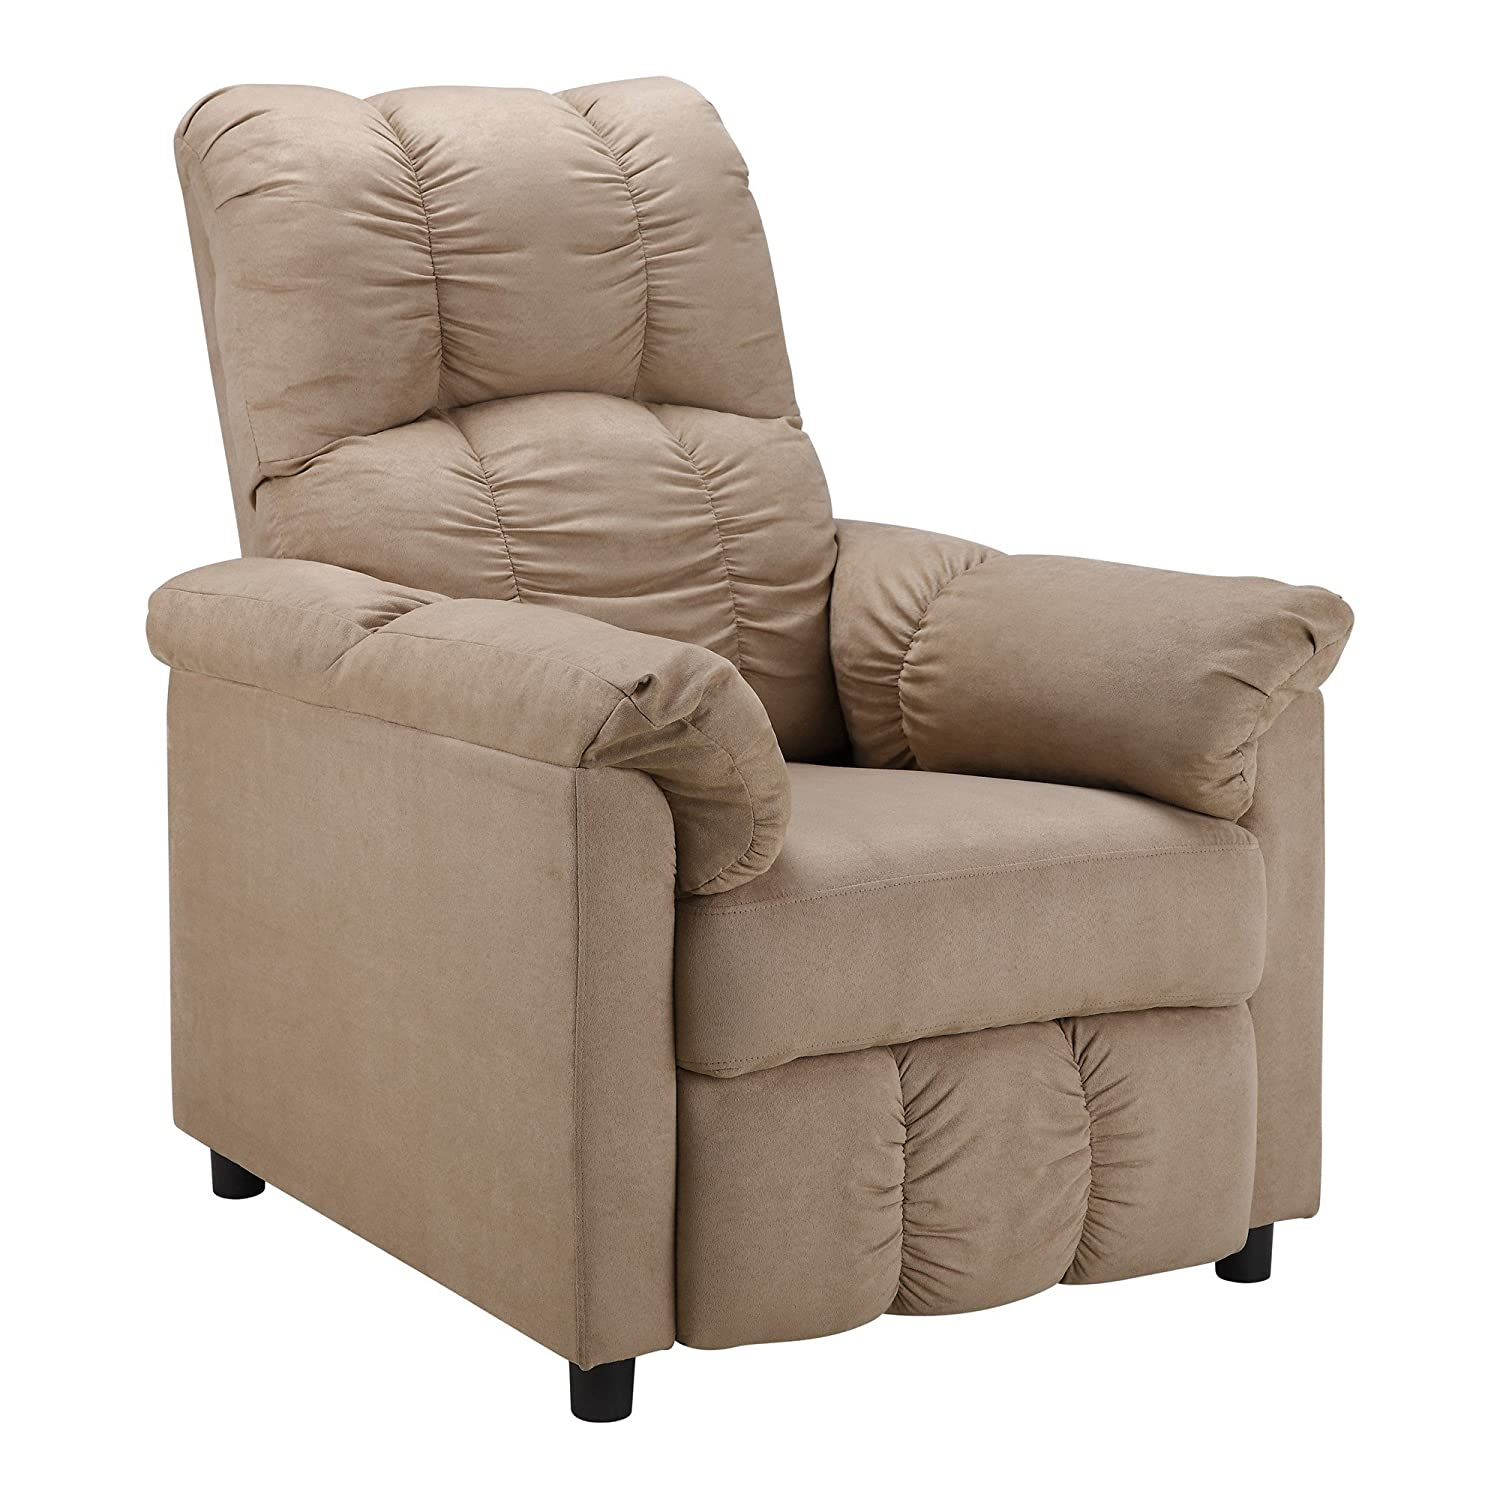 Amazon Dorel Living Slim Recliner Beige Kitchen & Dining